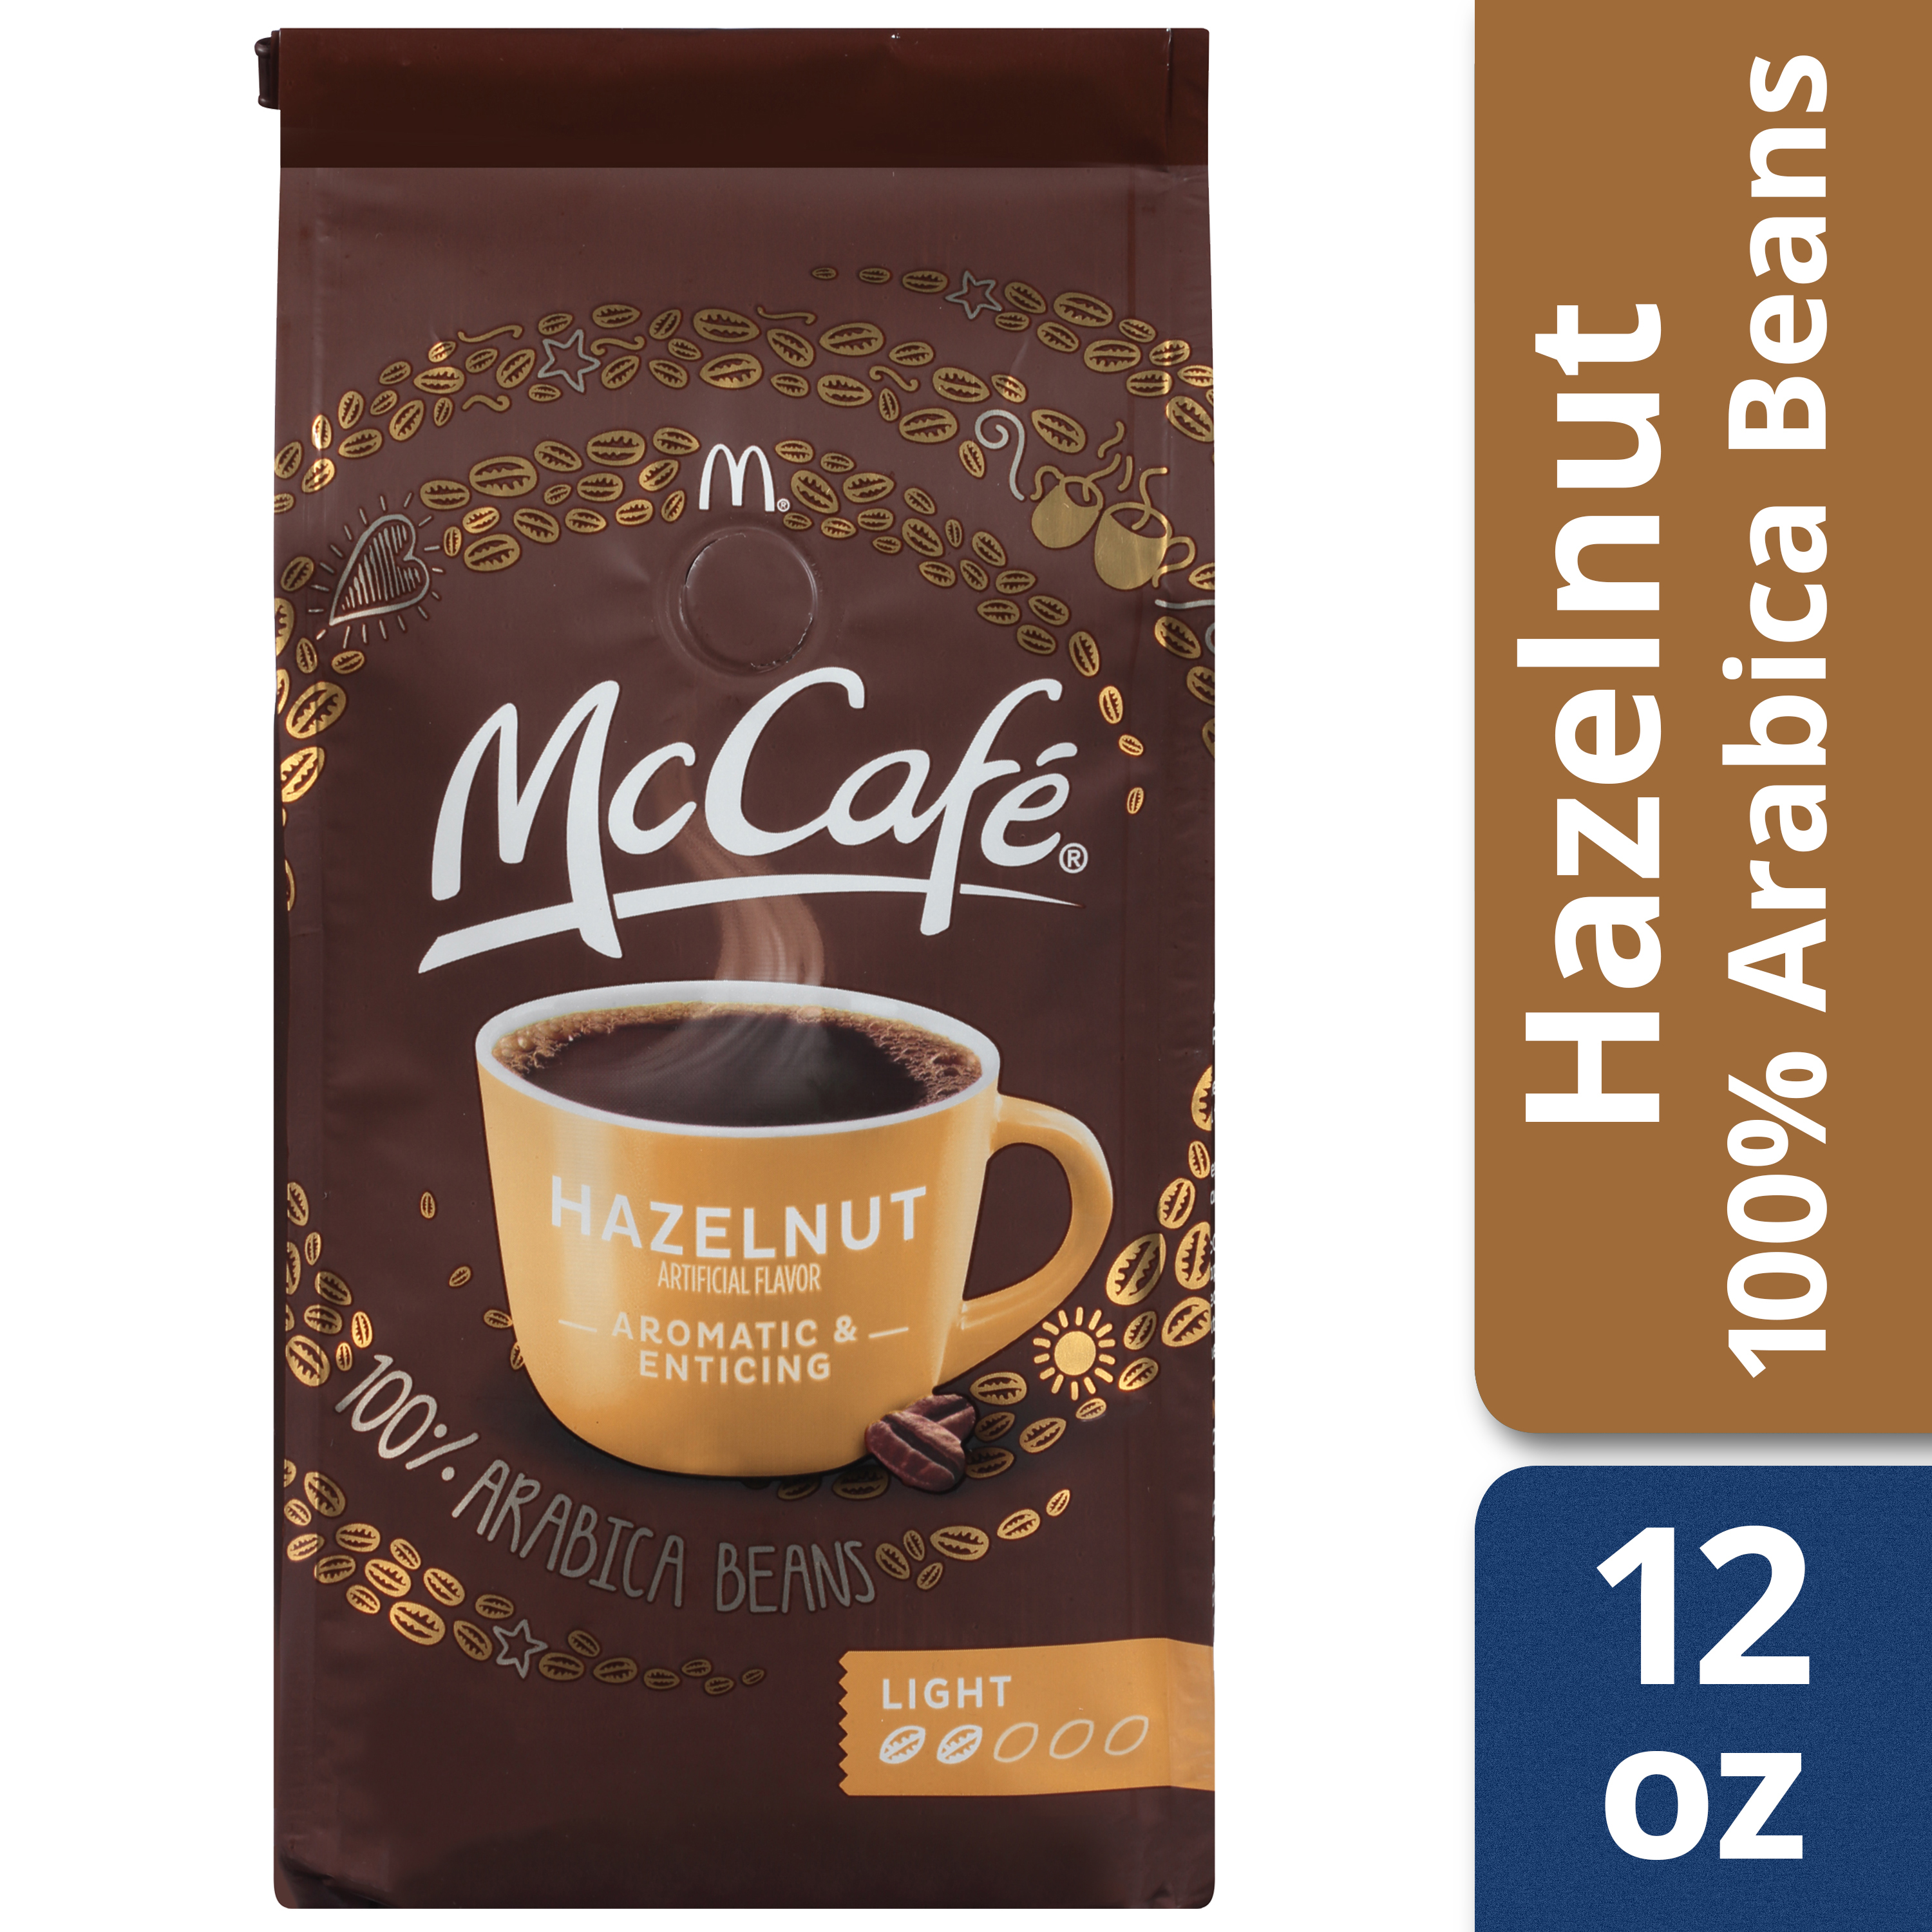 McCafe Hazelnut Ground Coffee 12 oz Bag